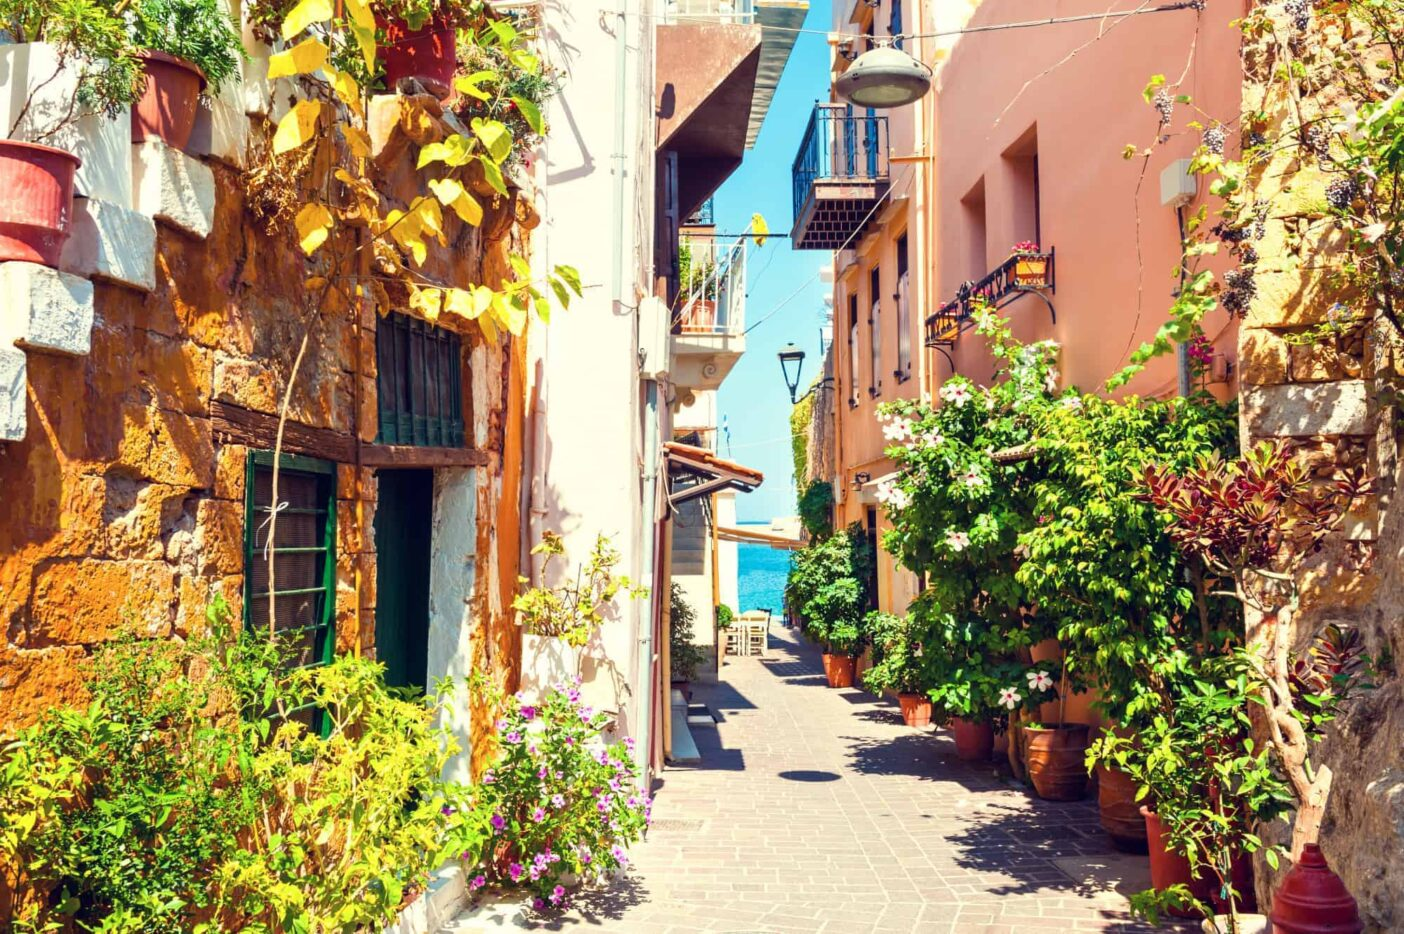 Bets places to live in Greece